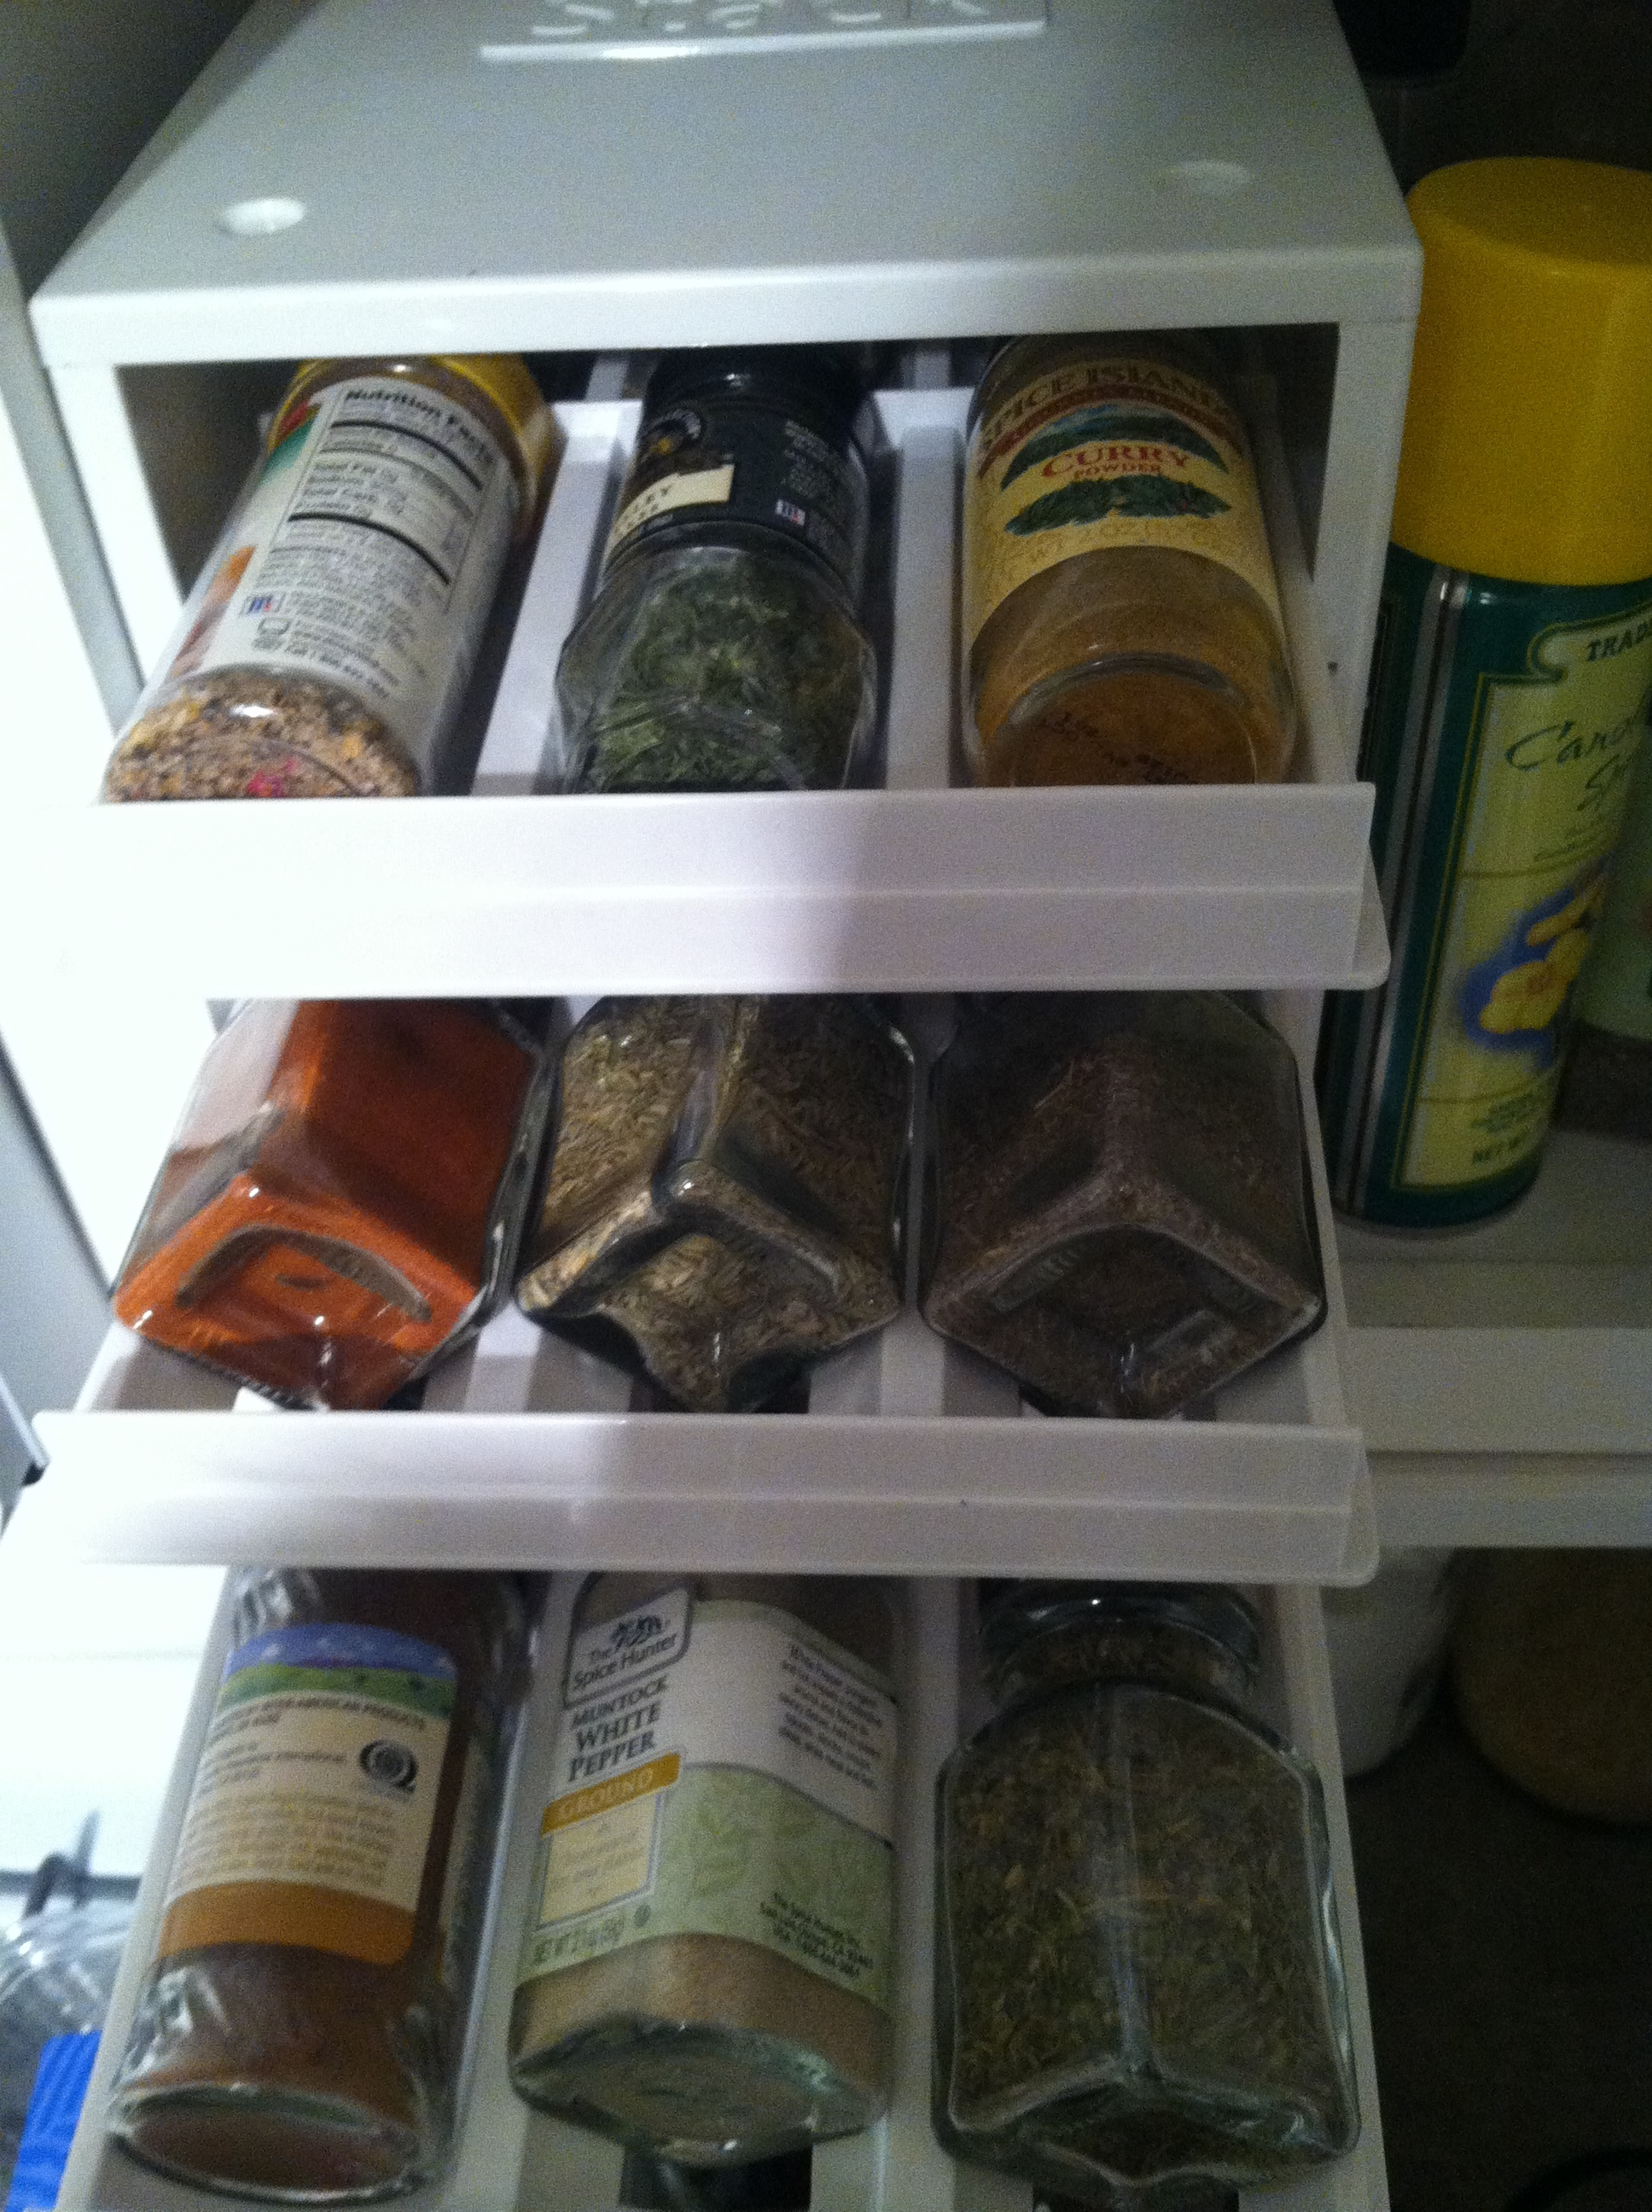 The spice drawer with everything open. This unit also comes in a bigger size, holding more jars and each cubby for the spice is big enough to accommodate various shapes and sizes.